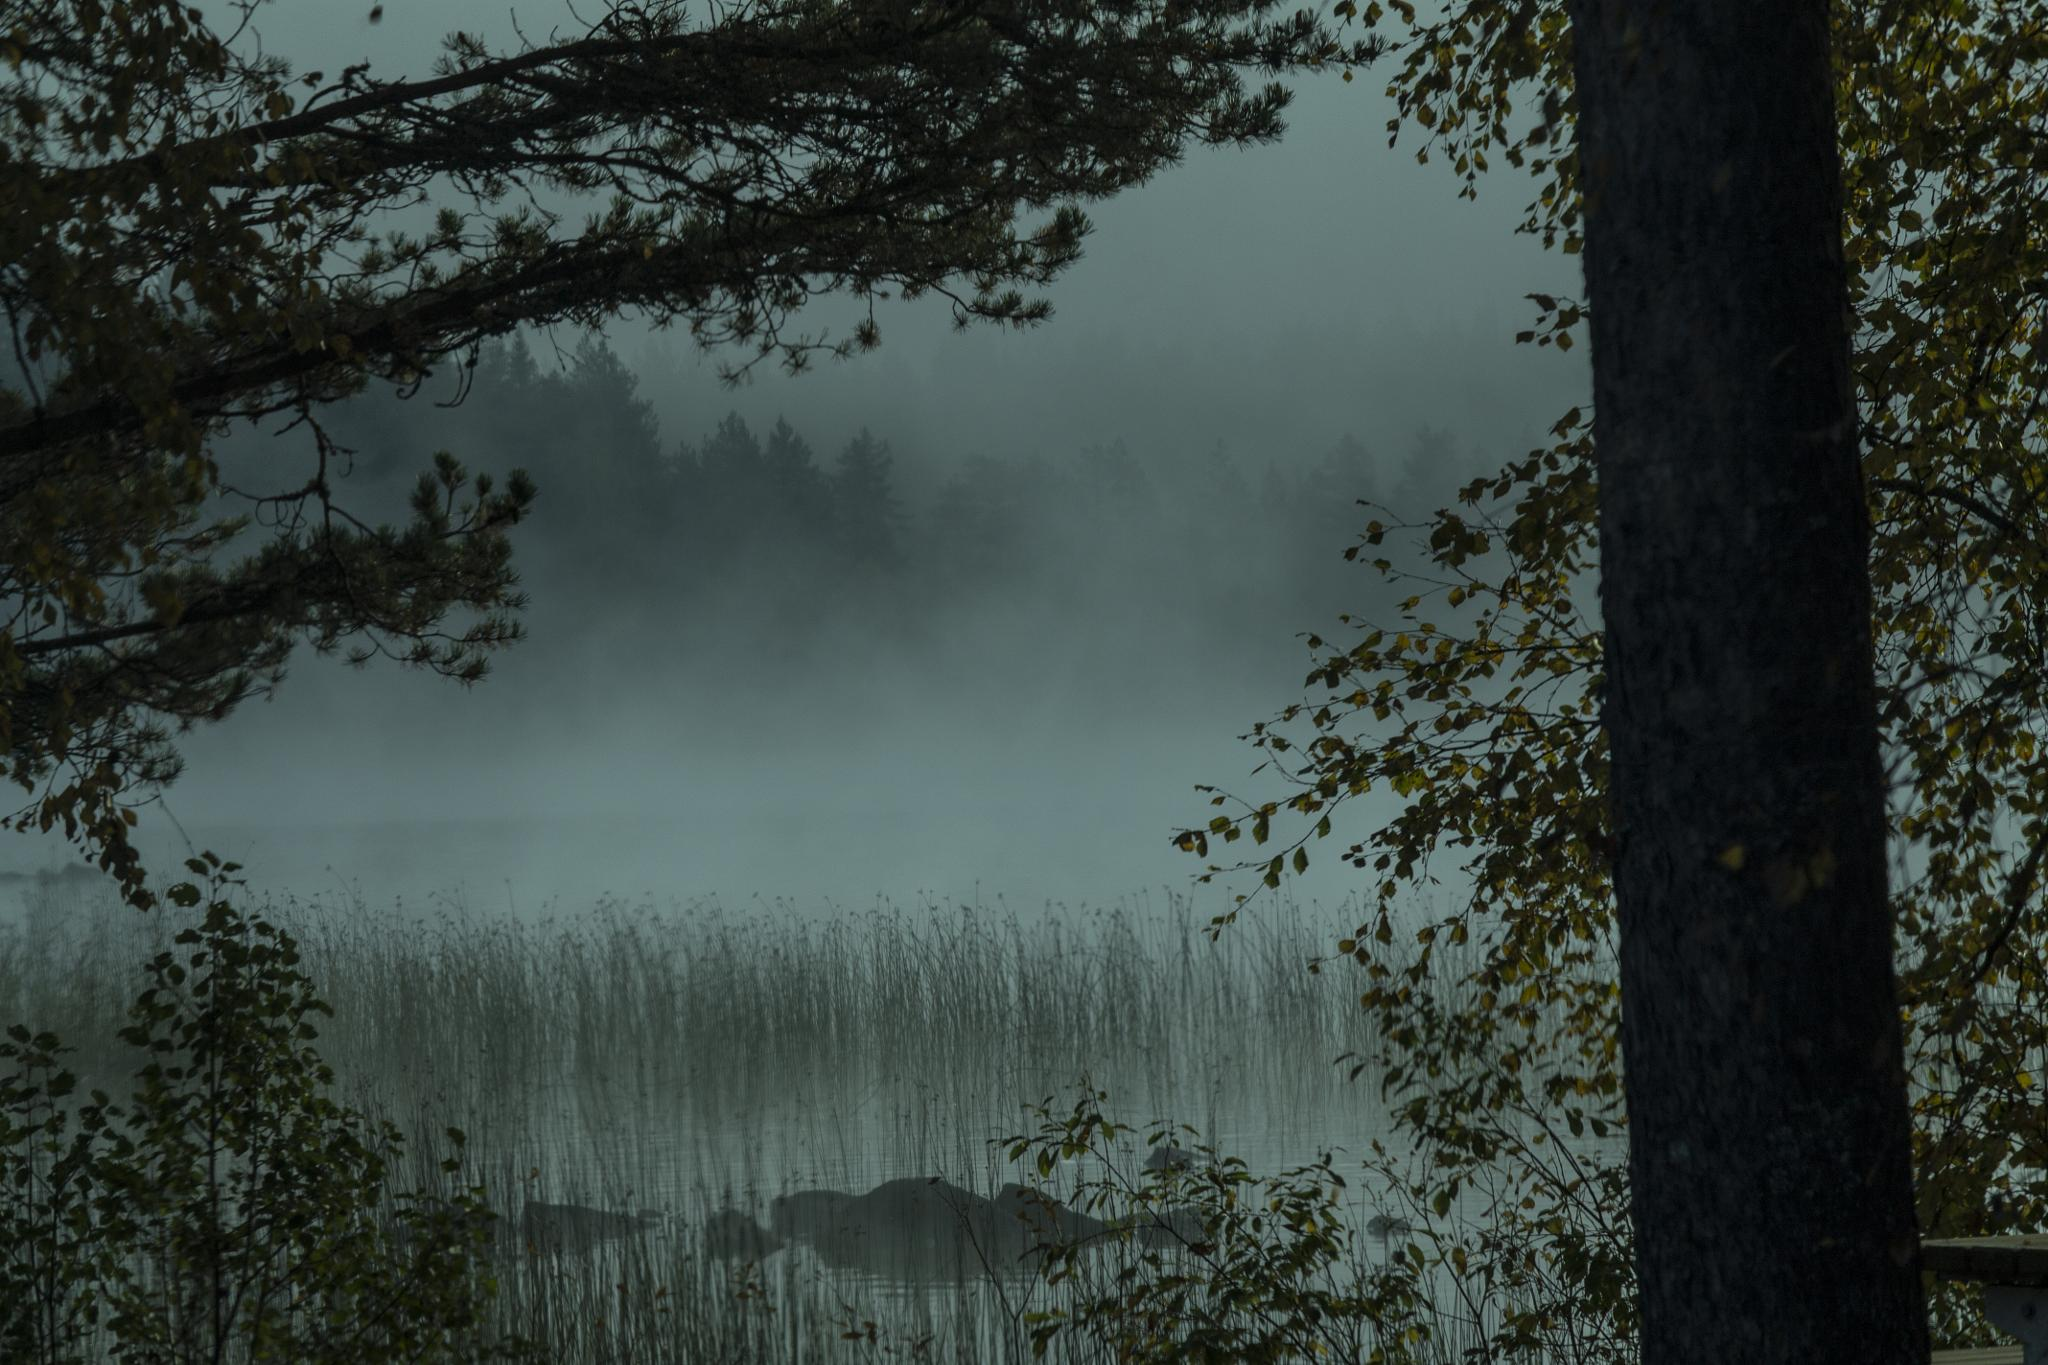 Morning mist over the lake by Carl Hult